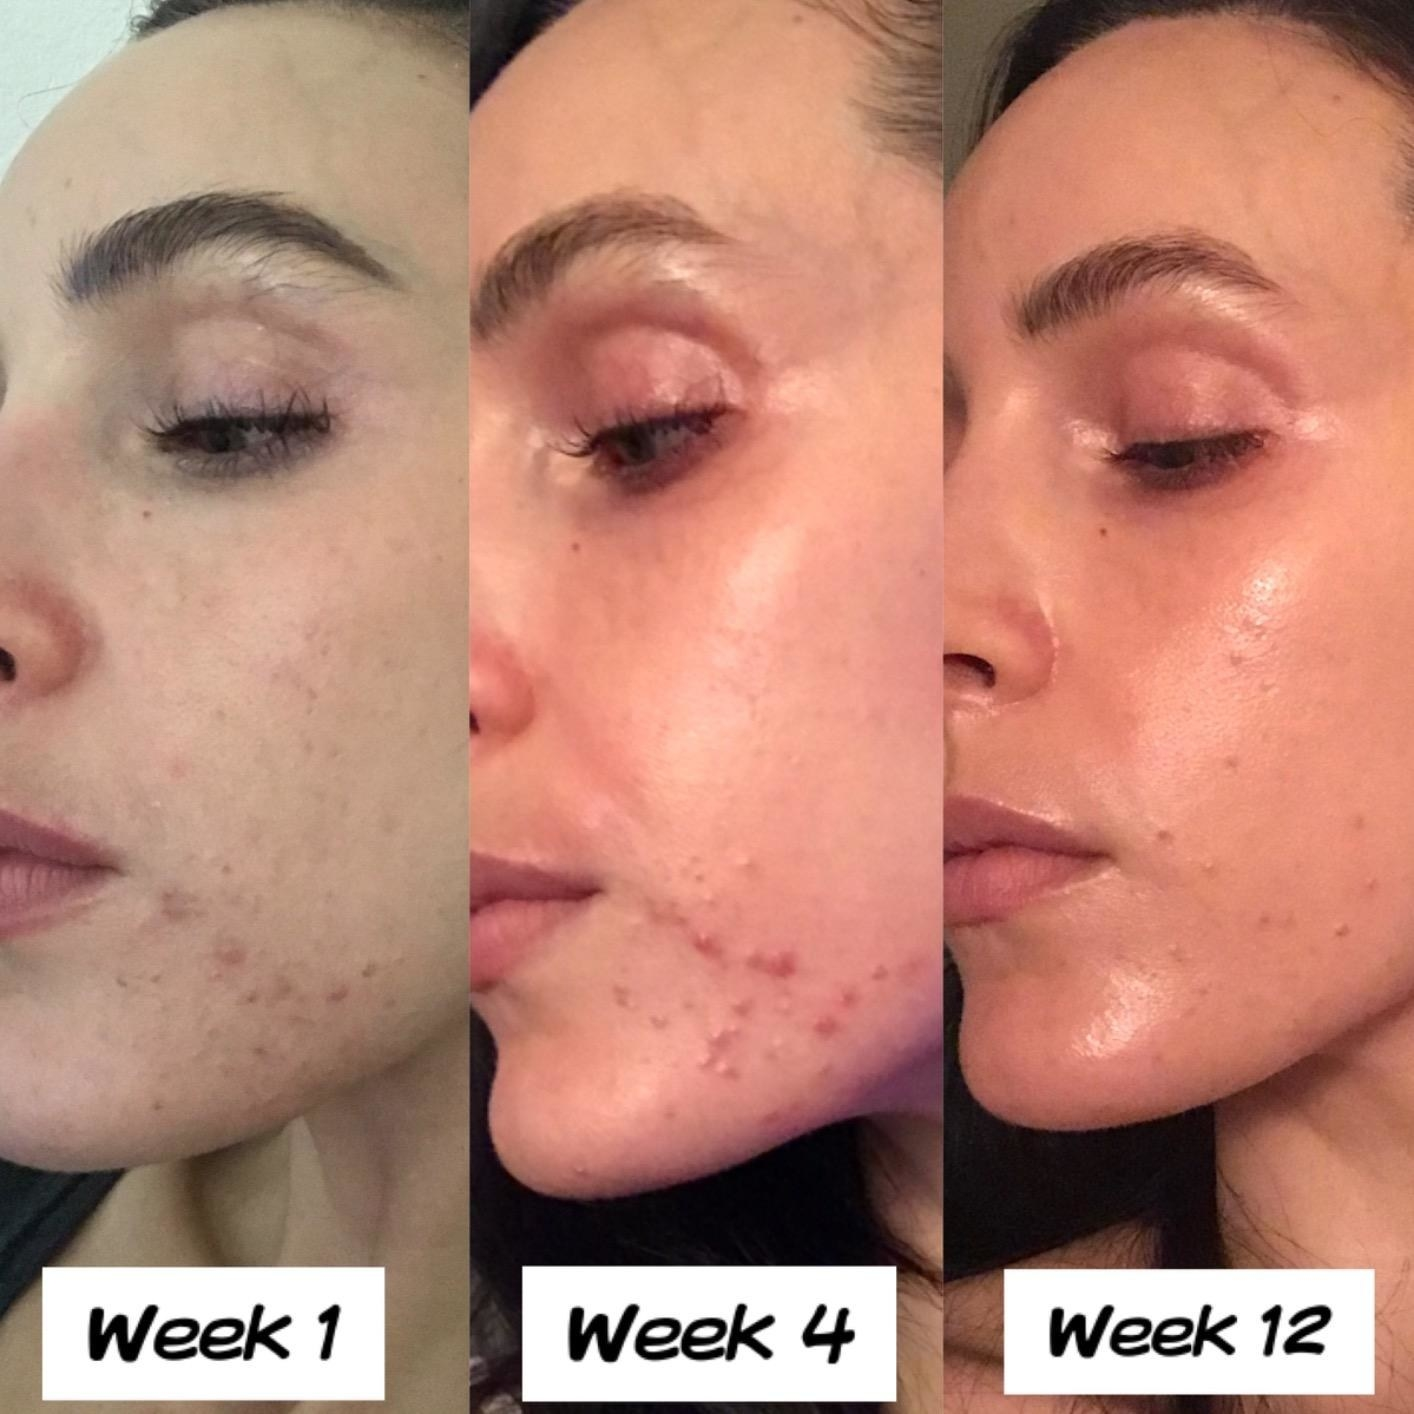 Reviewer photo showing results of using Differin gel over 12 weeks